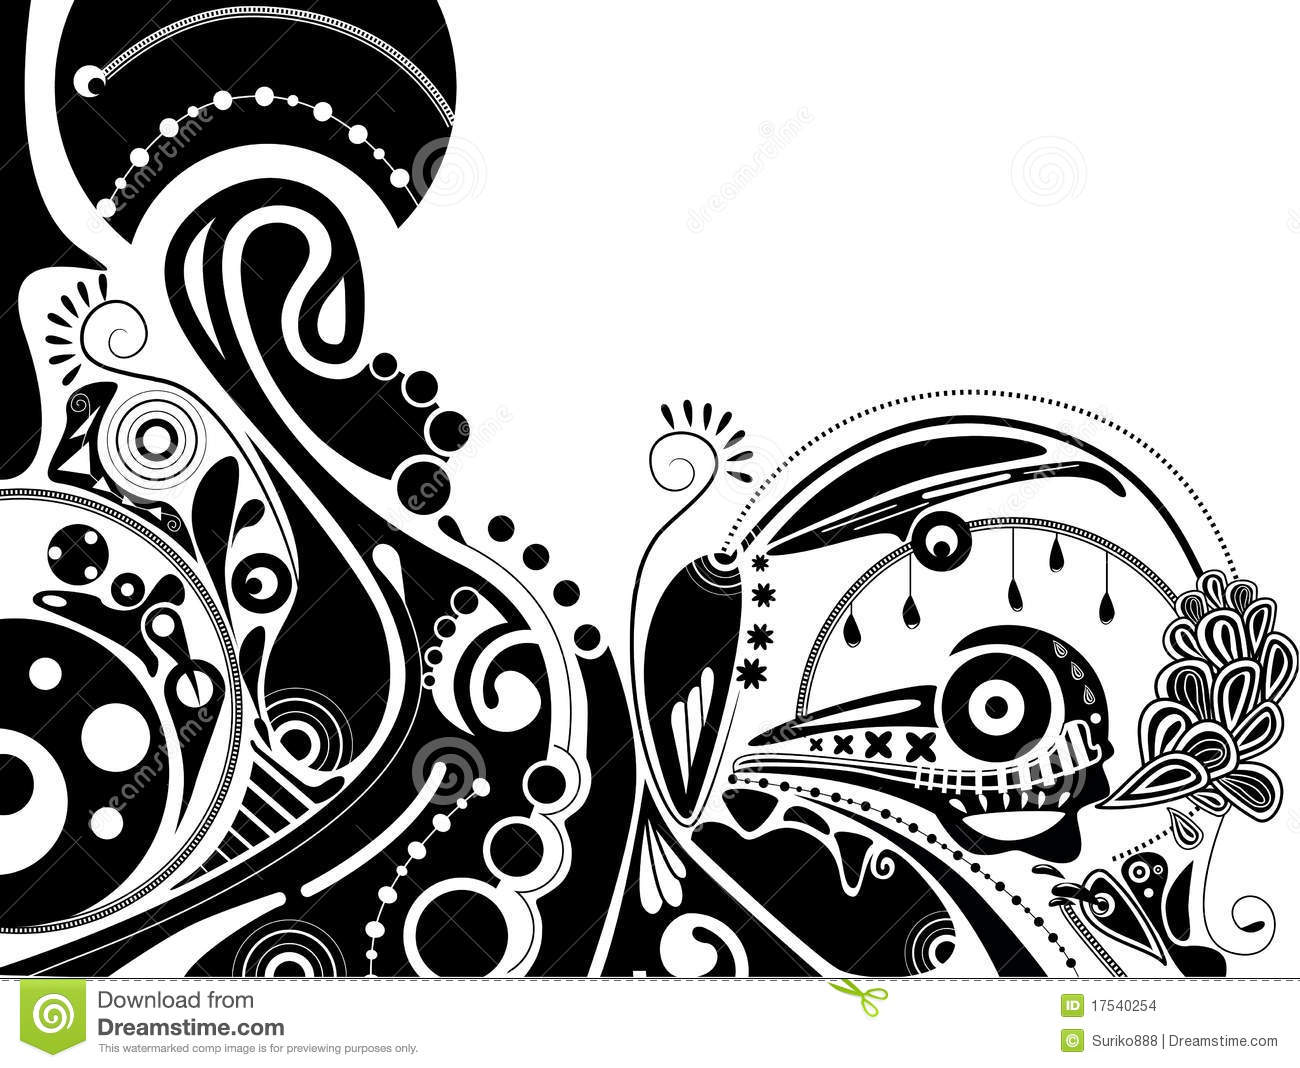 White And Black Illustration: Black-and-white Psychedelic Illustration Stock Images